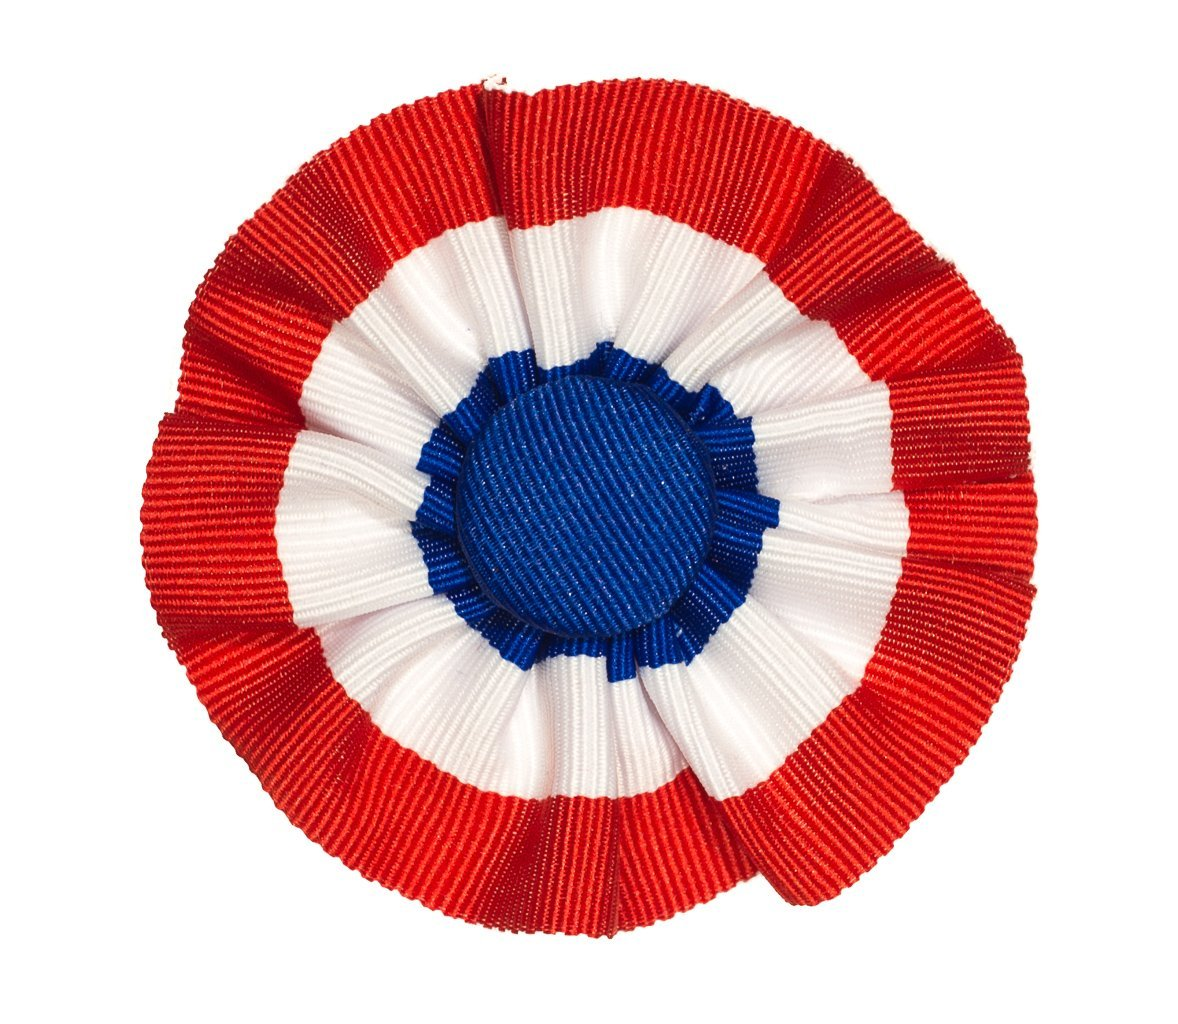 Tri-color Ribbon Cockade Red White and Blue Hat Trim with Brooch Pin Back